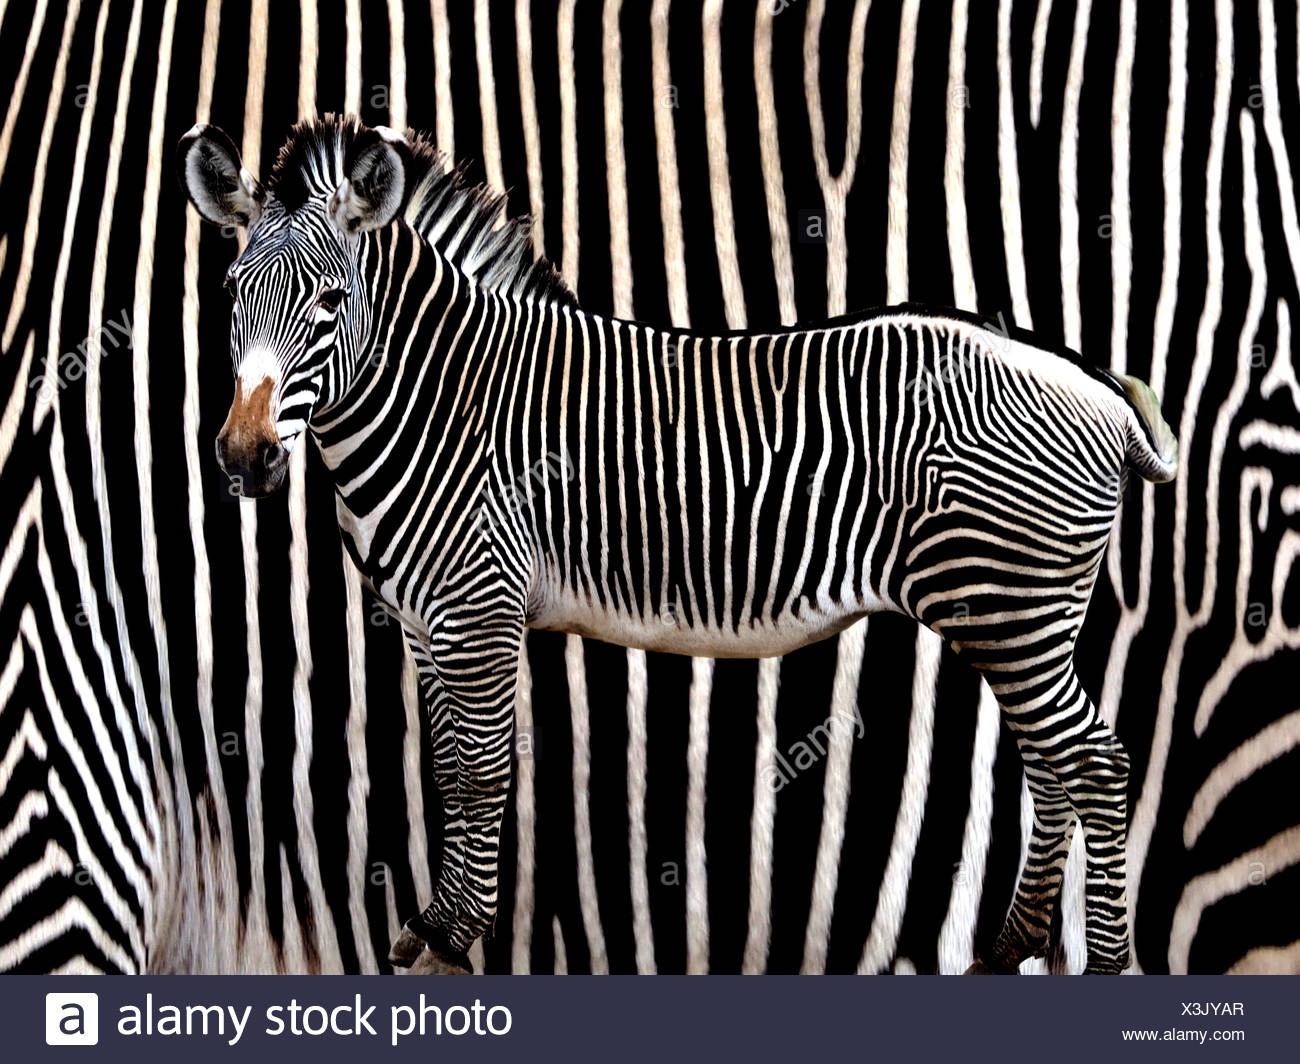 Digital Composite Image Of Zebra Against Striped Pattern - Stock Image